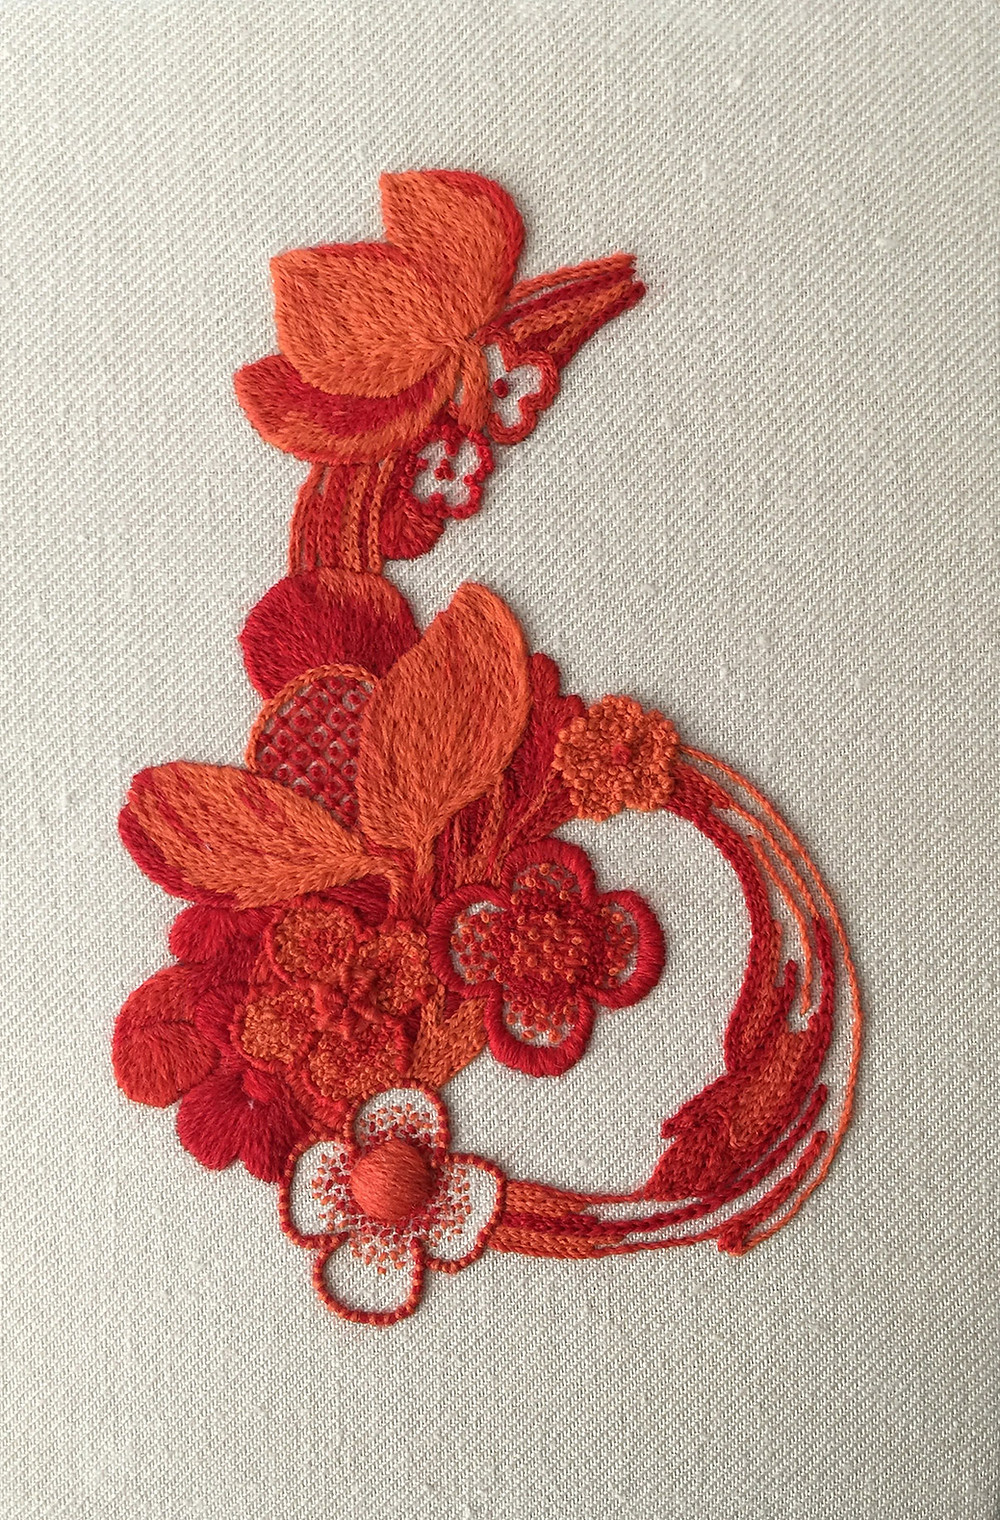 Grinling Gibbons Jacobean Crewelwork by Kate Pankhurst.